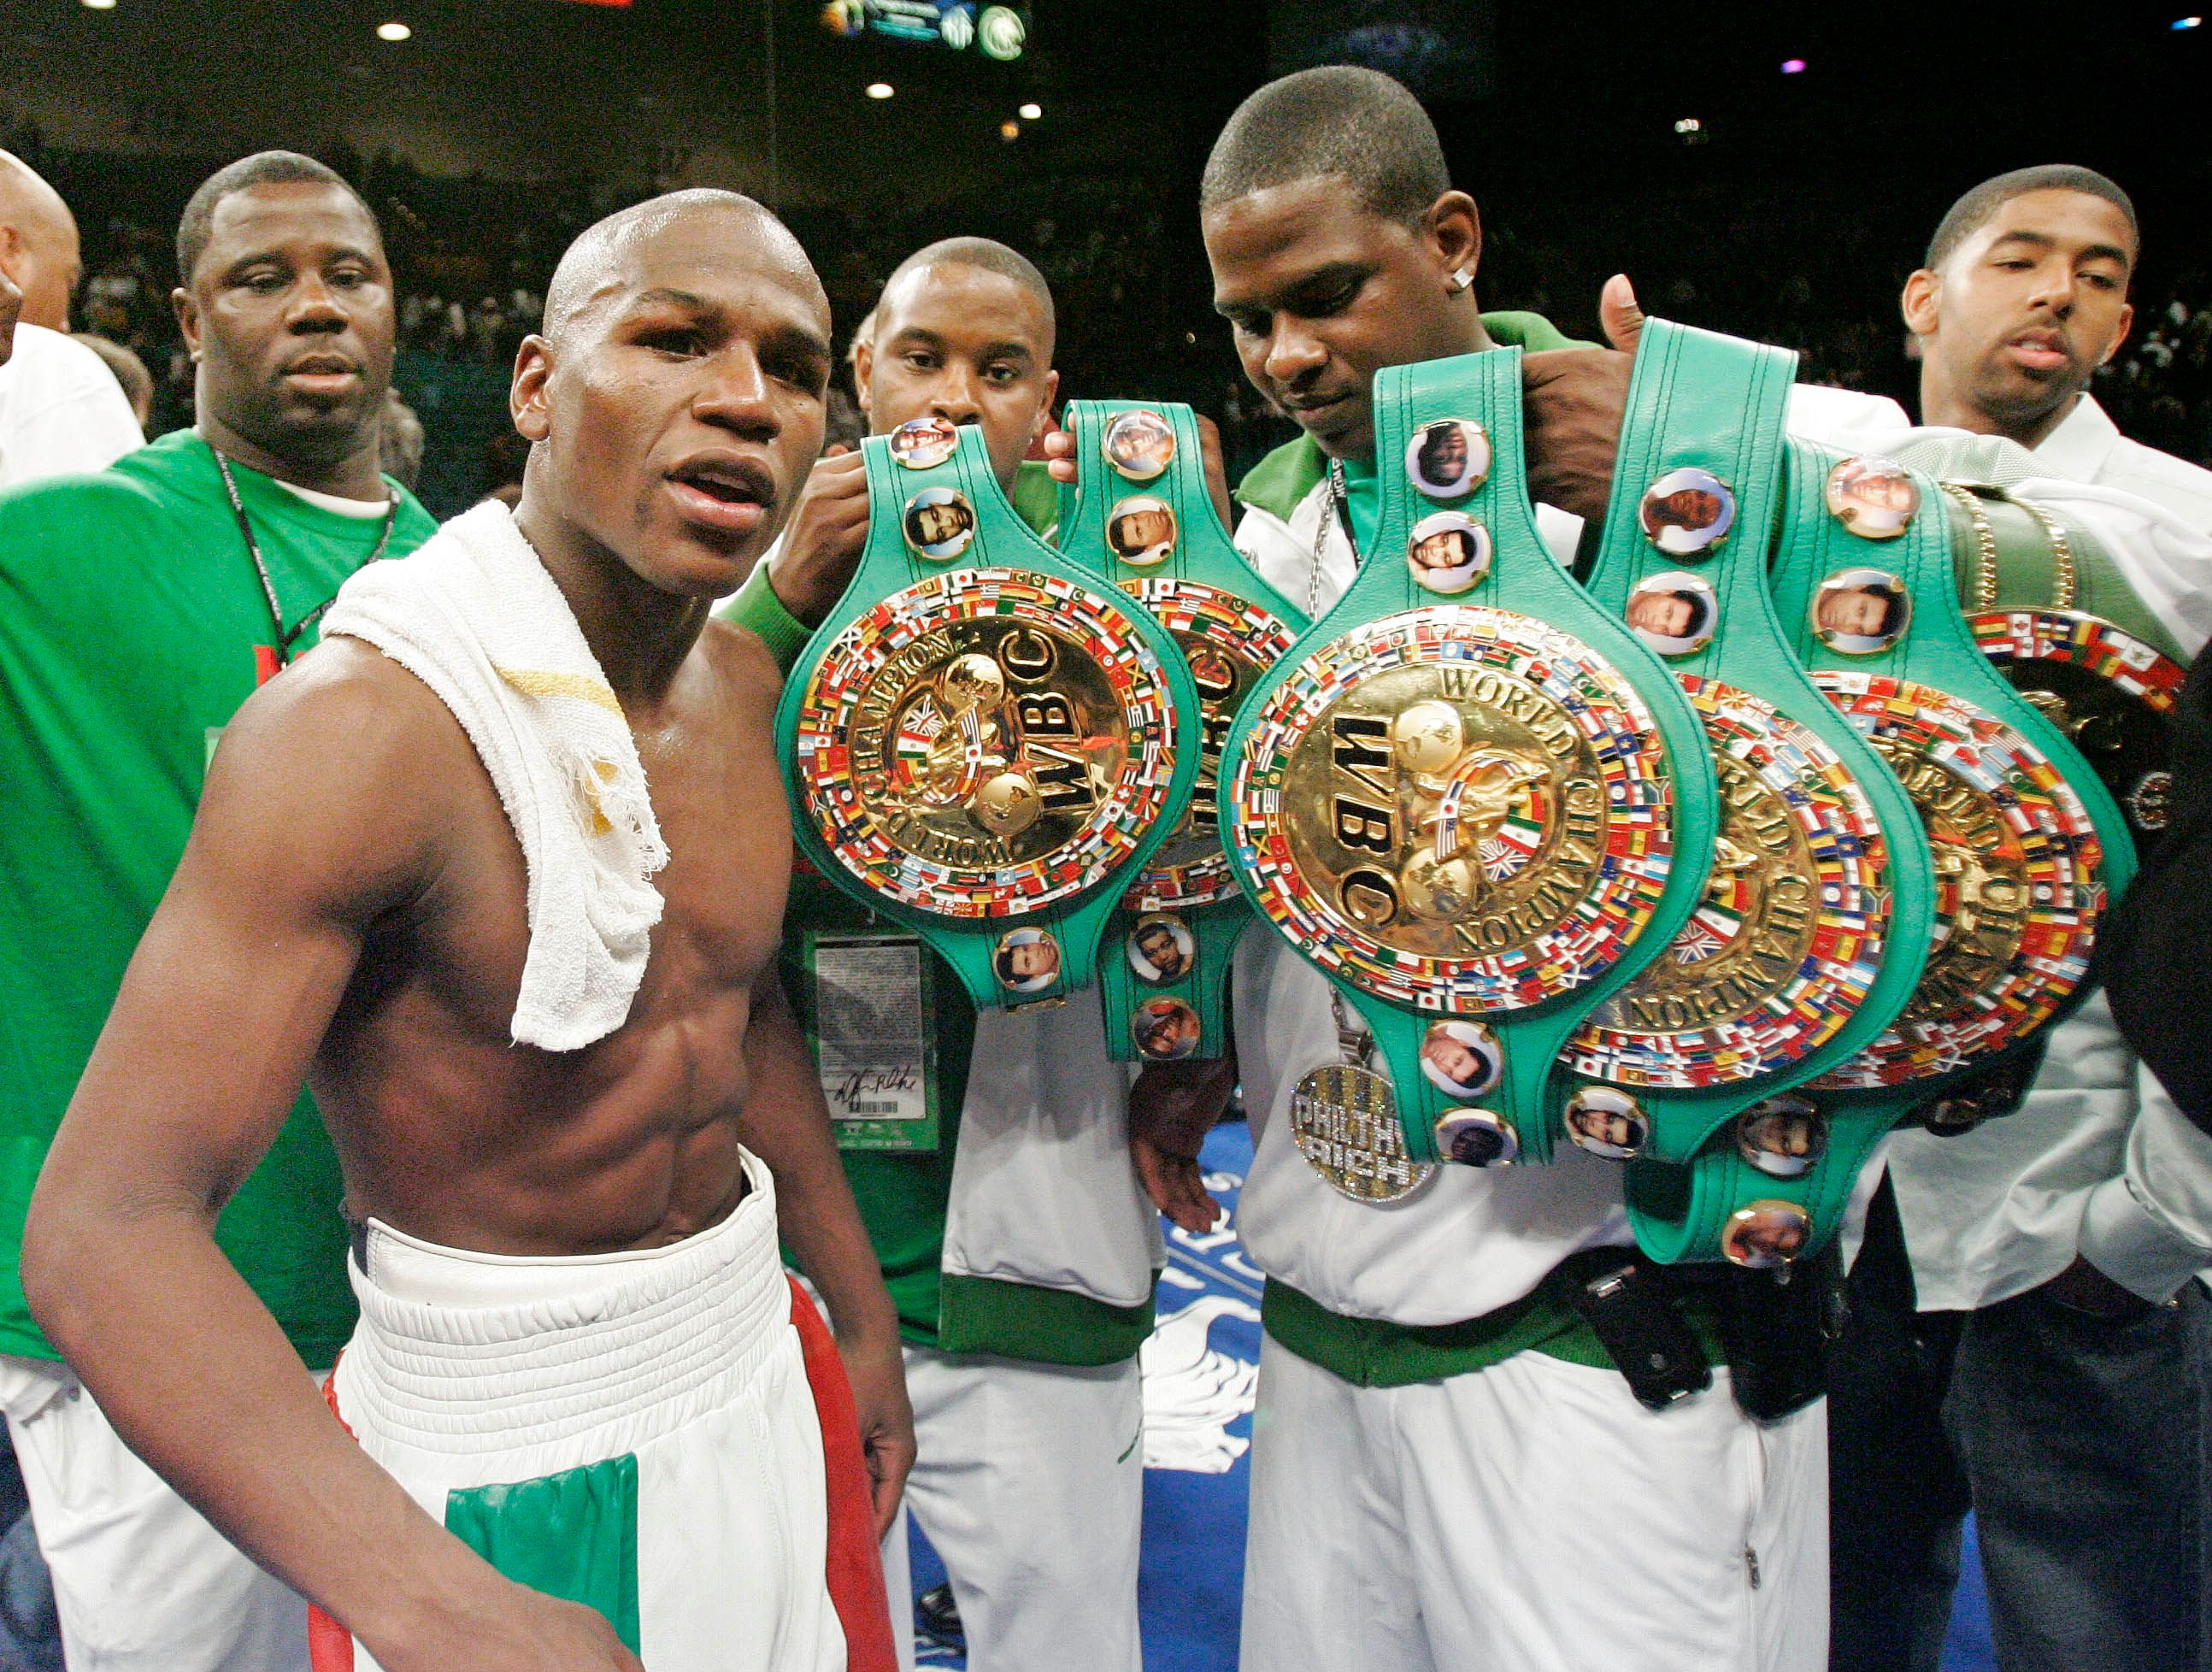 The World's 10 Richest Boxers